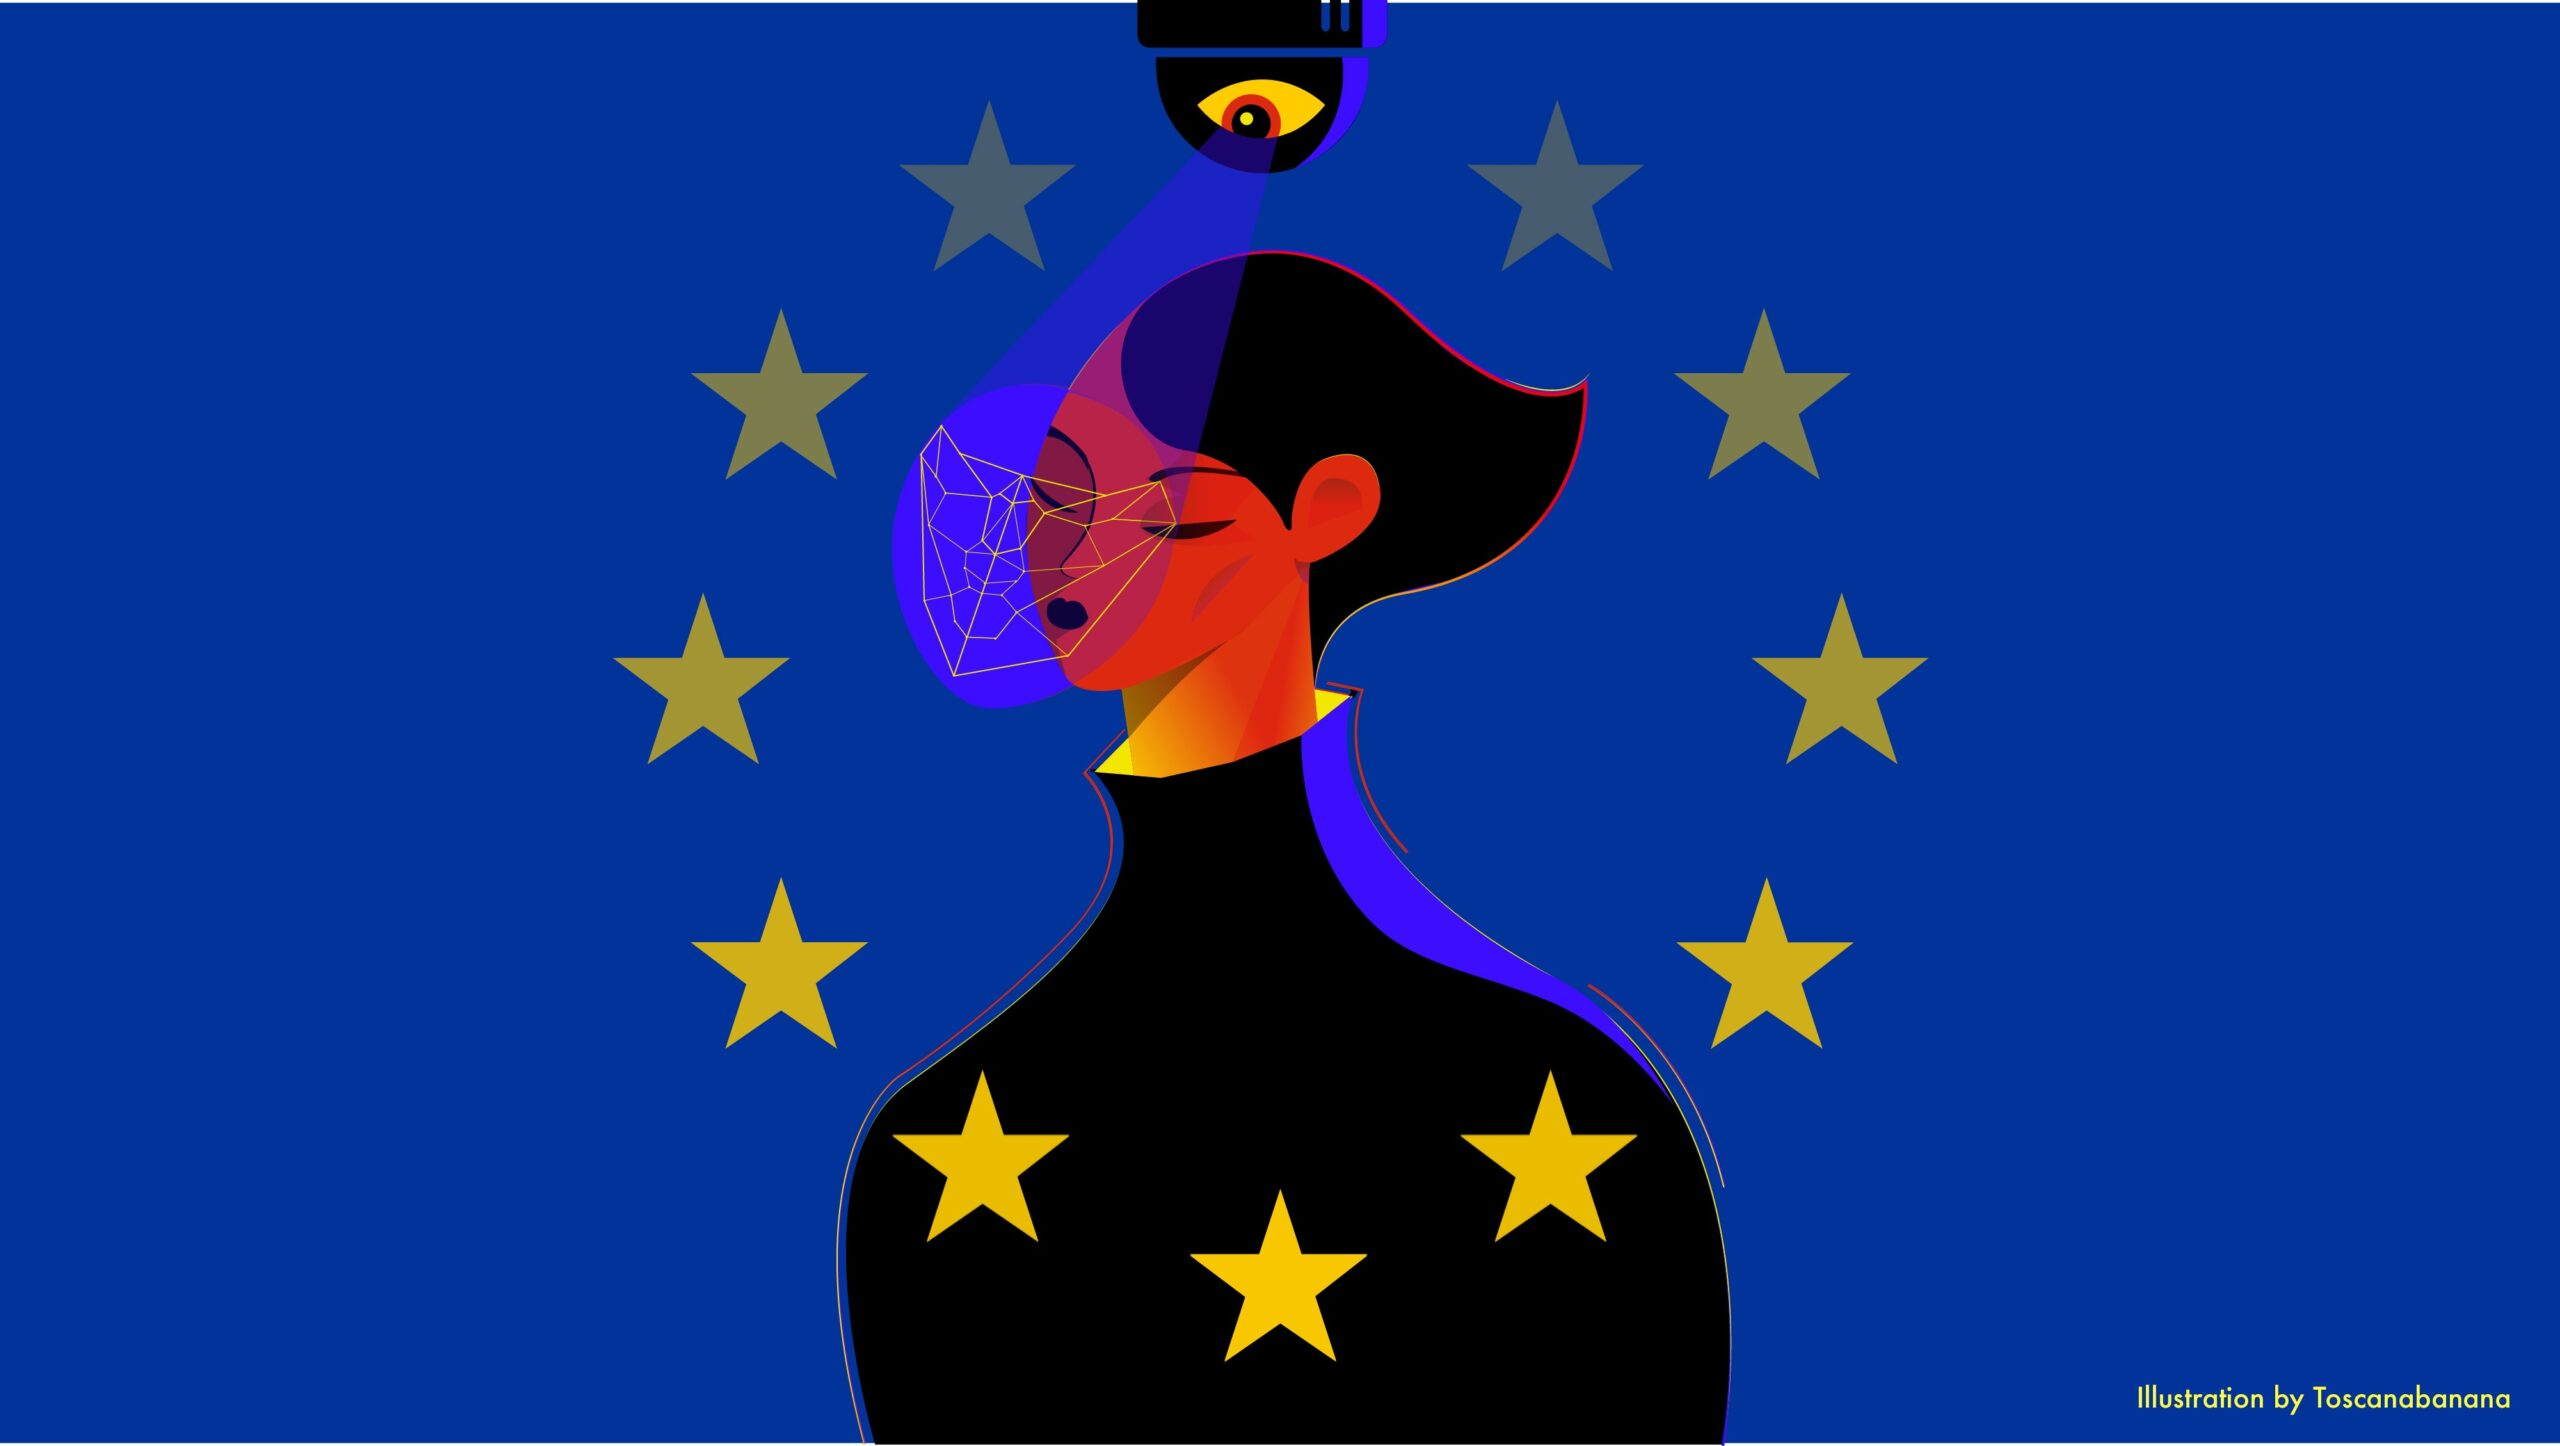 EU companies selling surveillance tools to China's human rights abusers